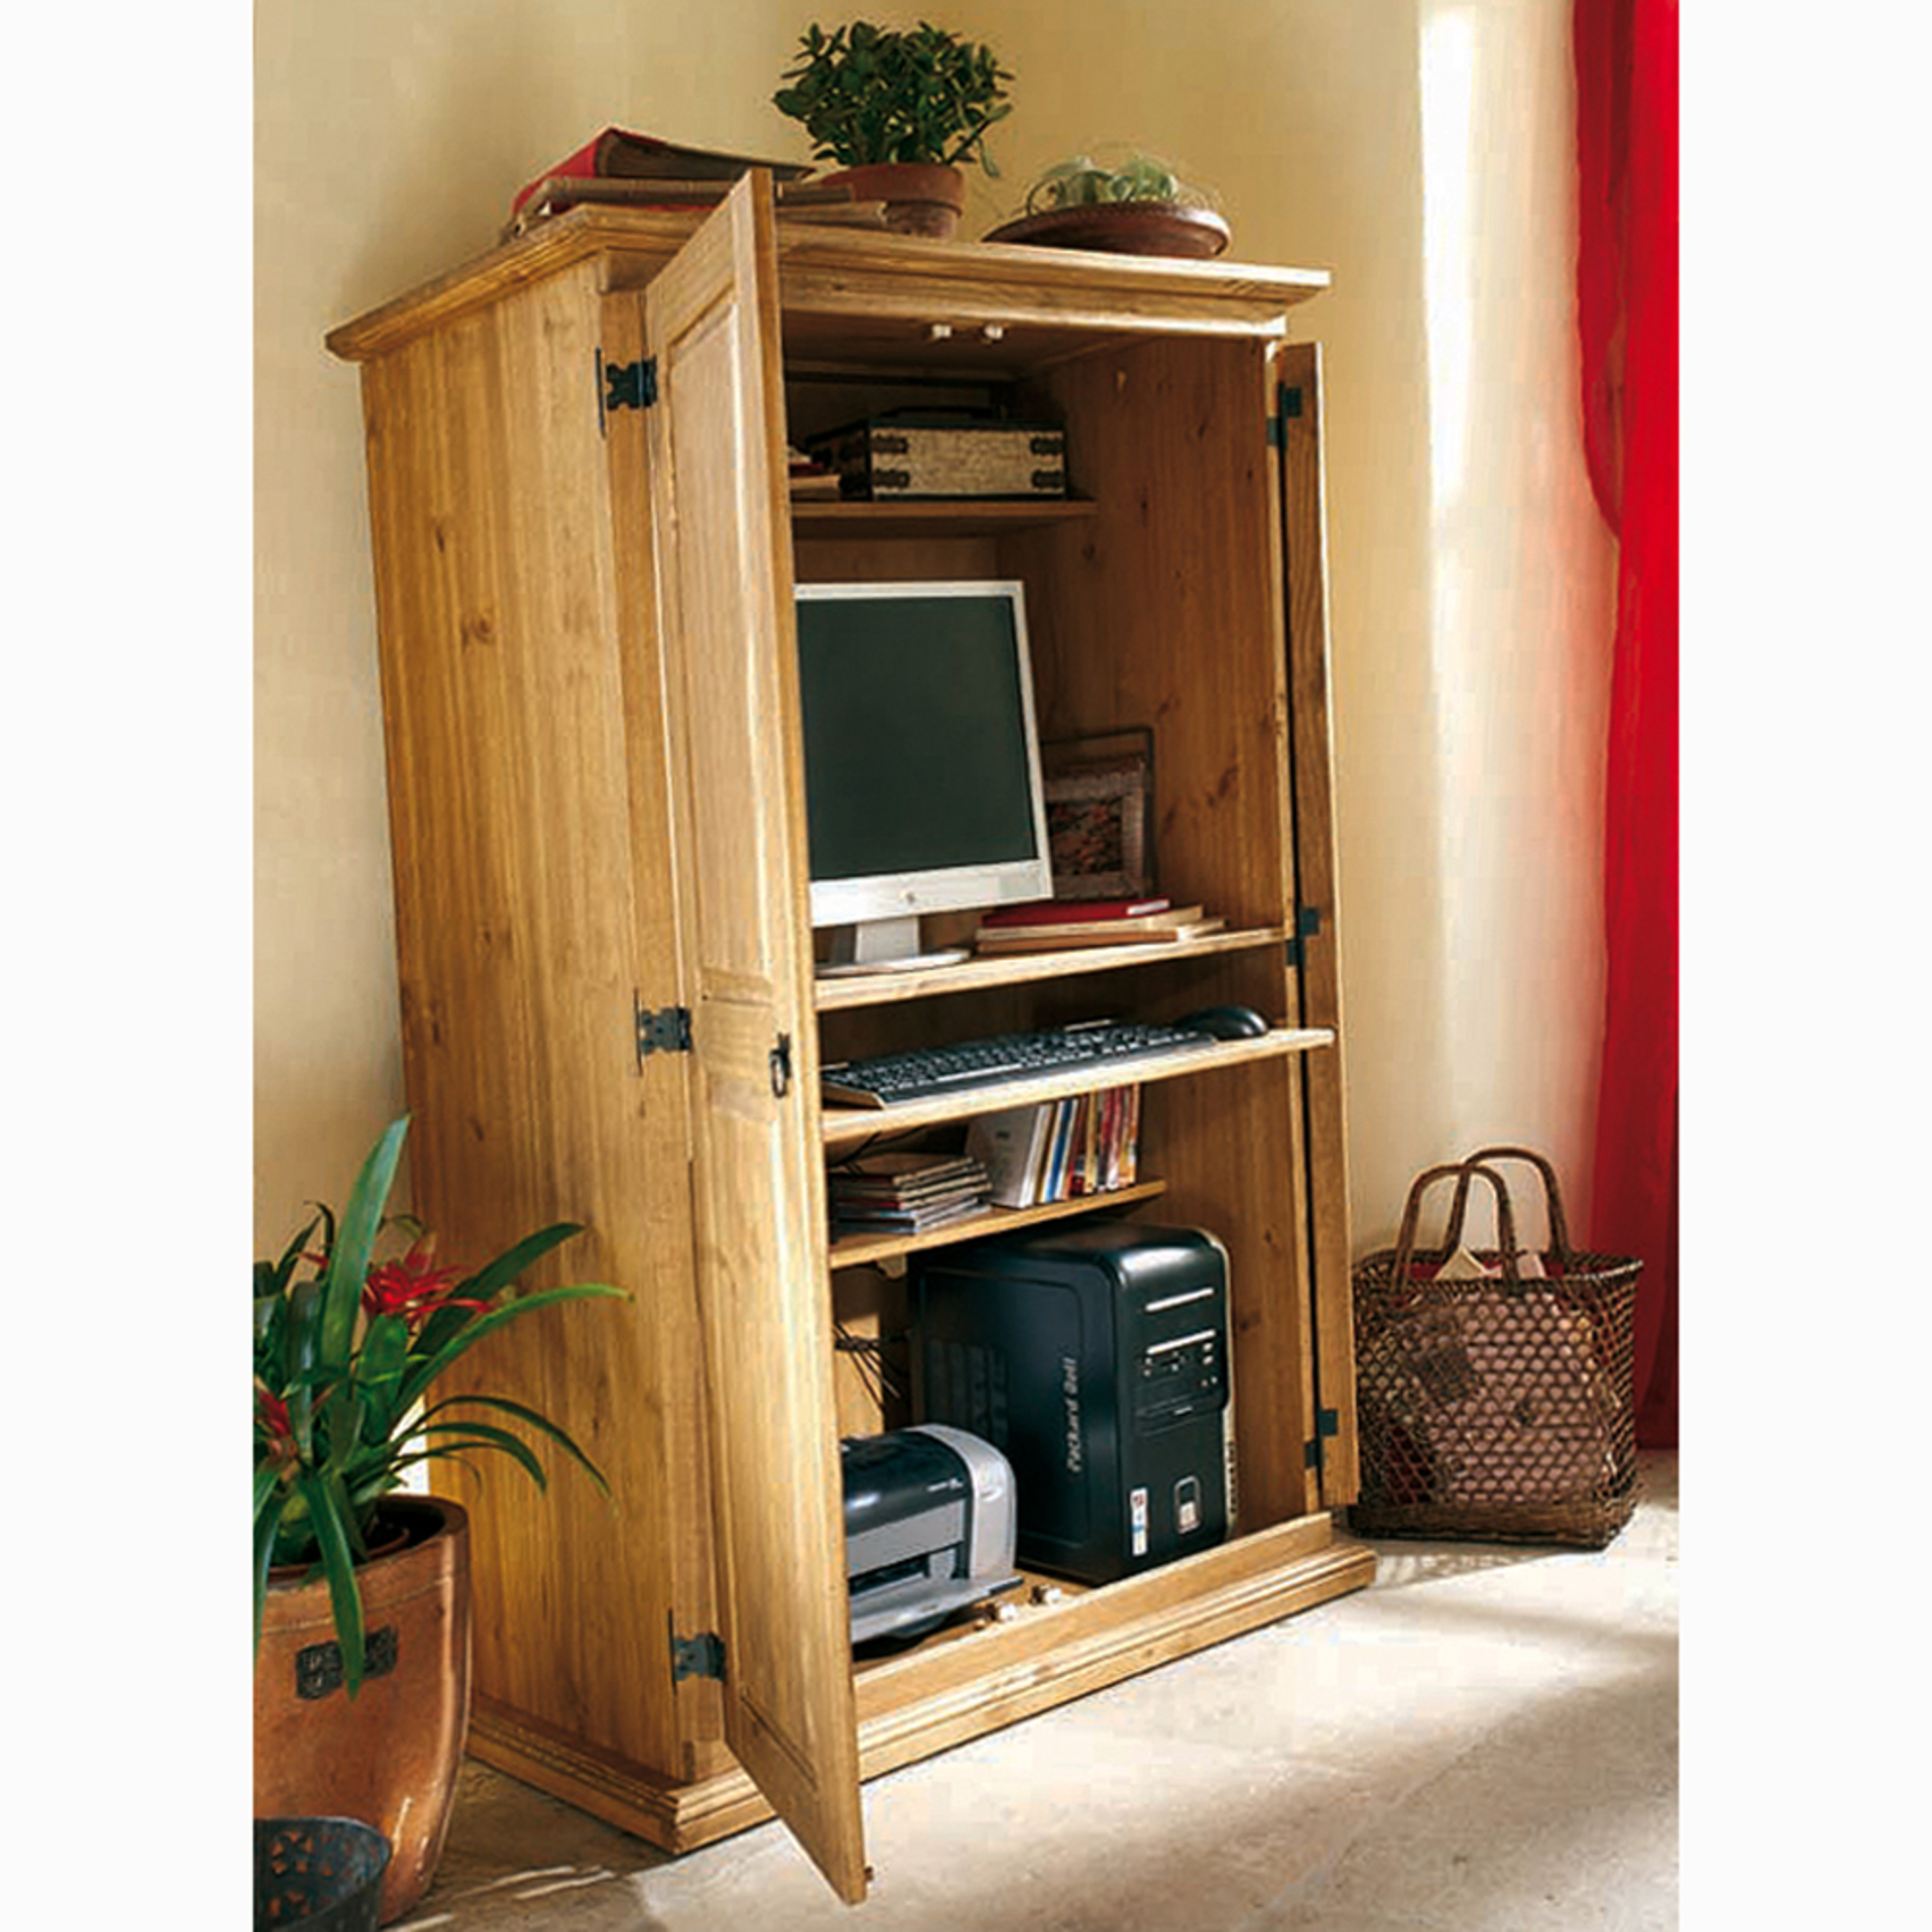 Meuble tv ou armoire micro informatique el patio for Meuble tv armoire